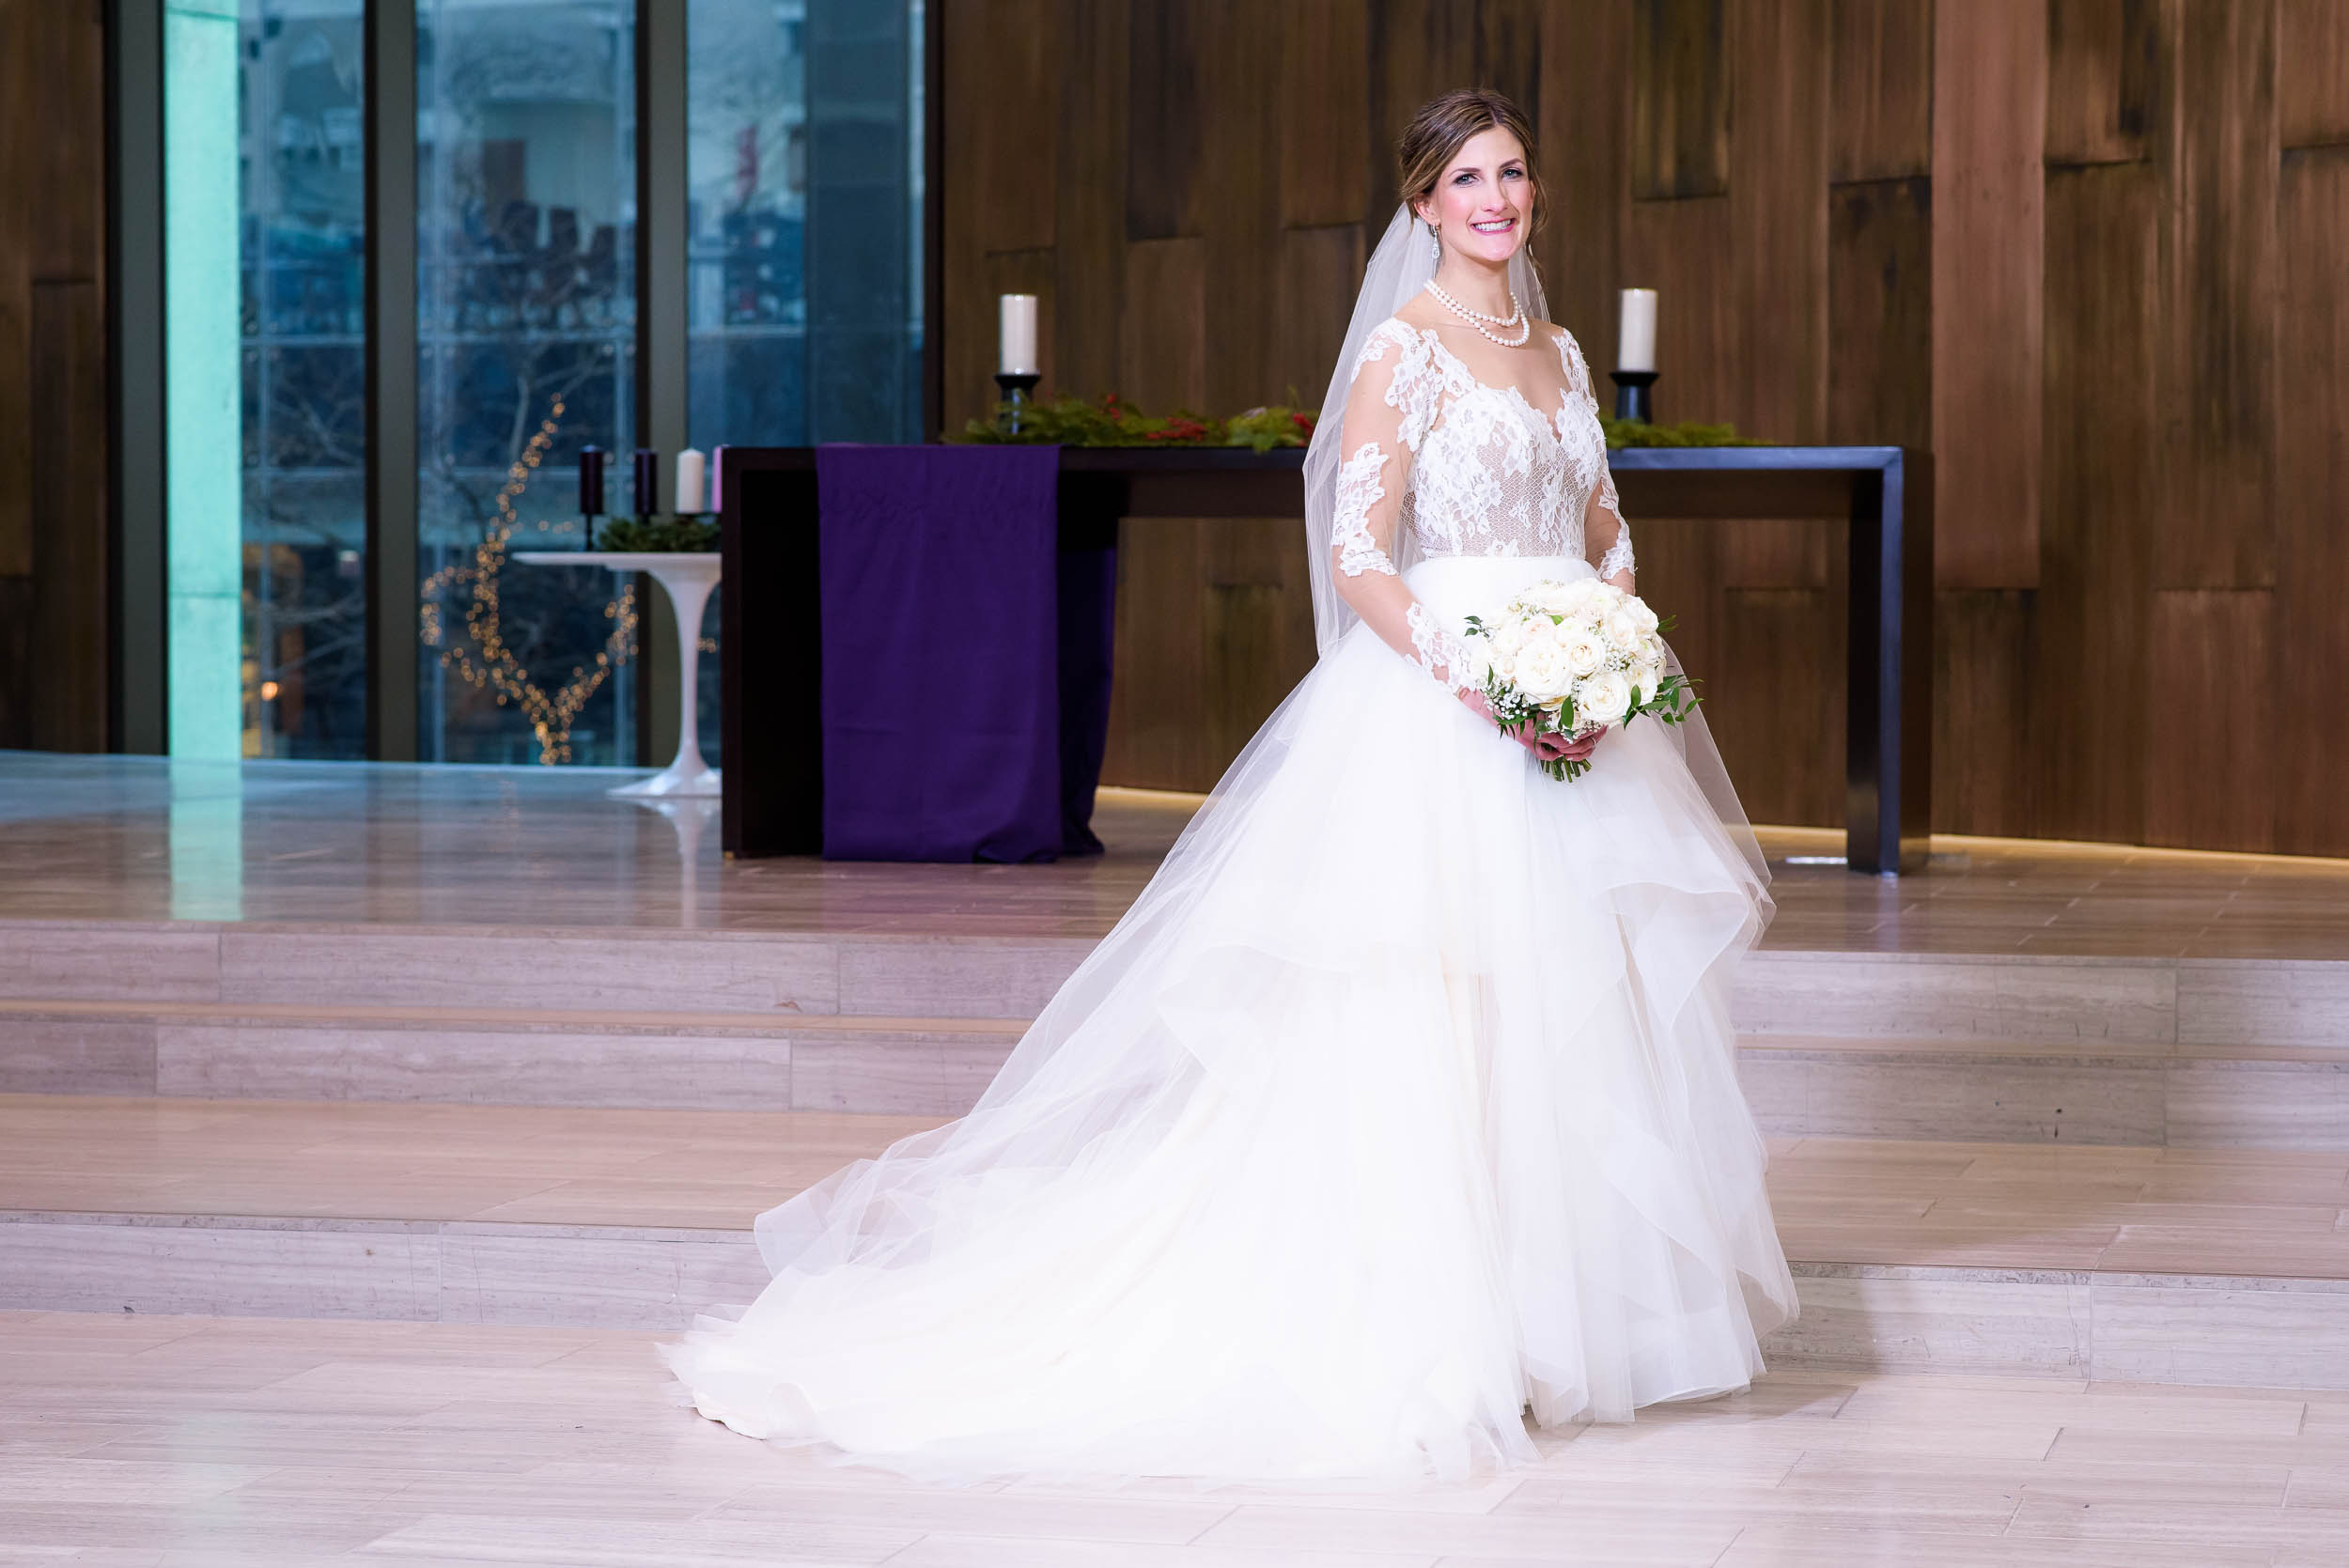 Bride portrait during a Fourth Presbyterian Church wedding.